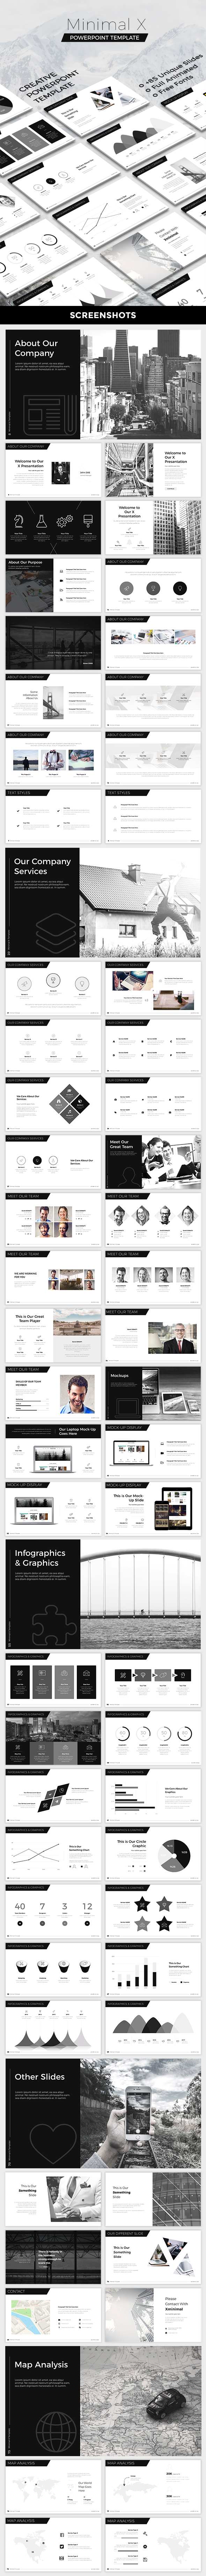 Minimal X Powerpoint Template - Creative PowerPoint Templates